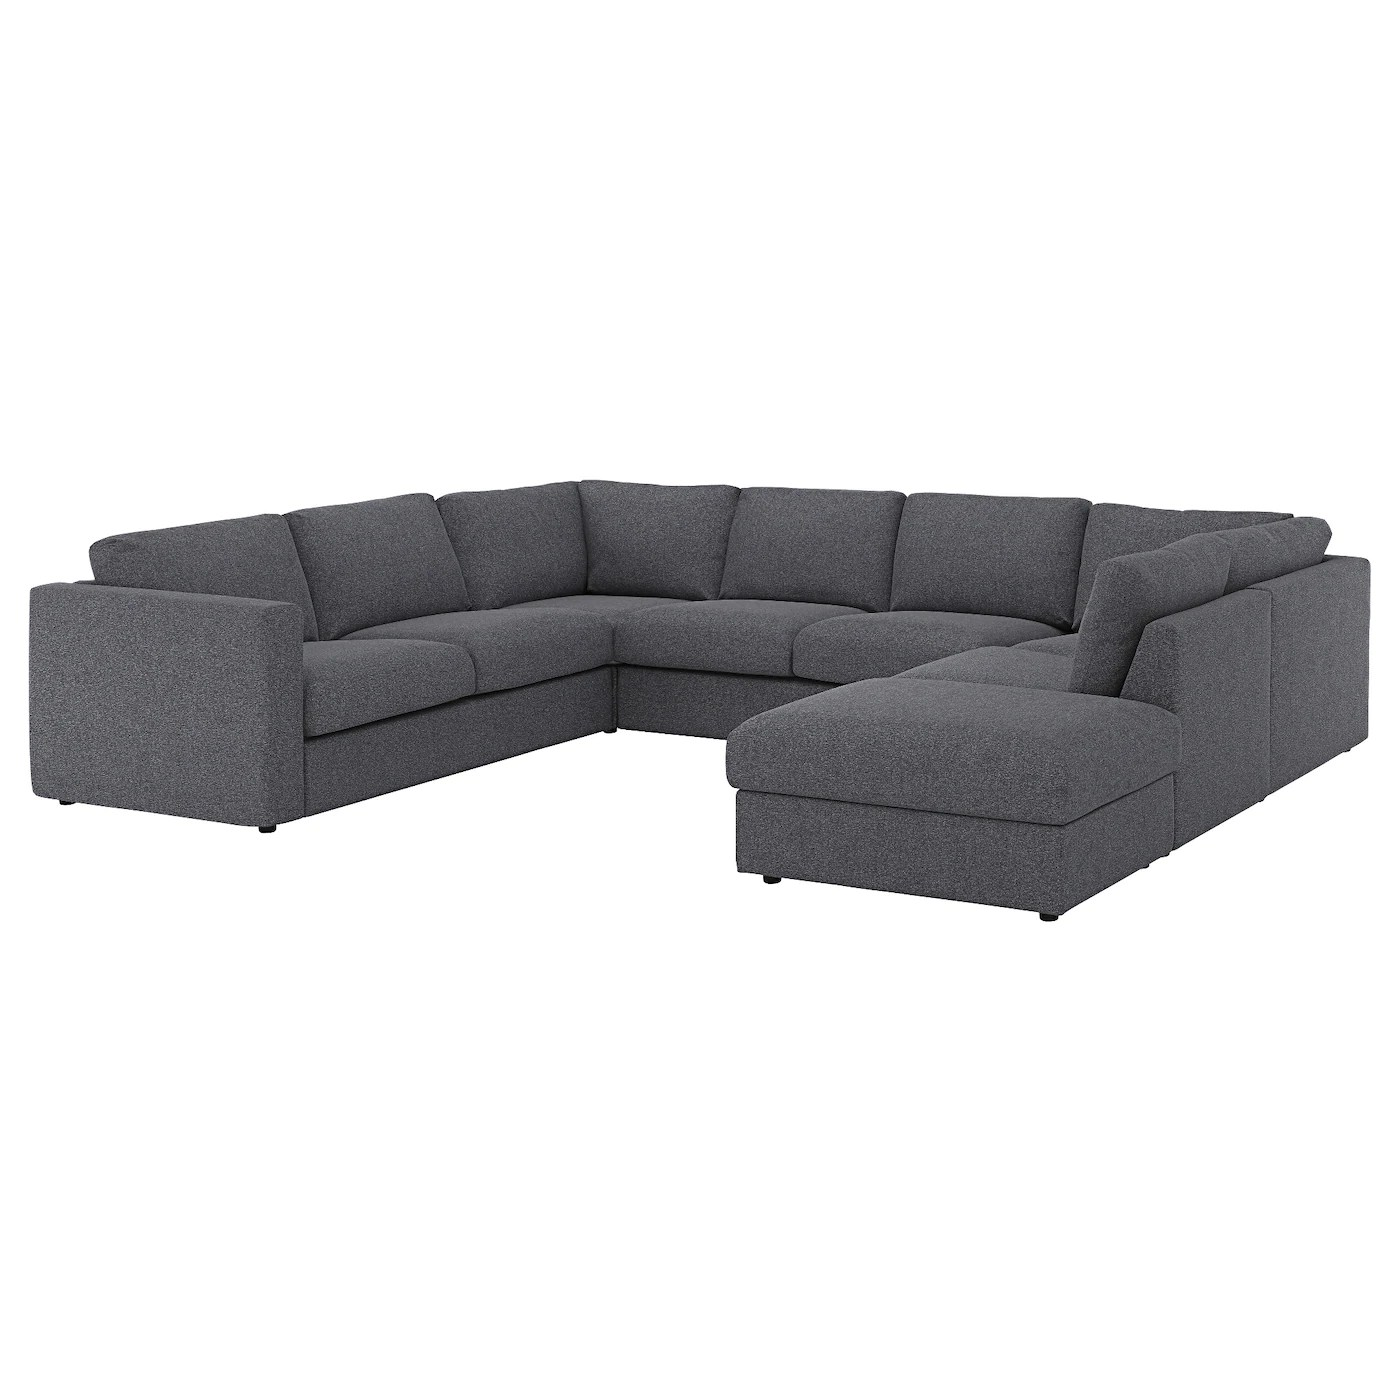 U Sofa Vimle U Shaped Sofa 6 Seat With Open End Gunnared Medium Grey